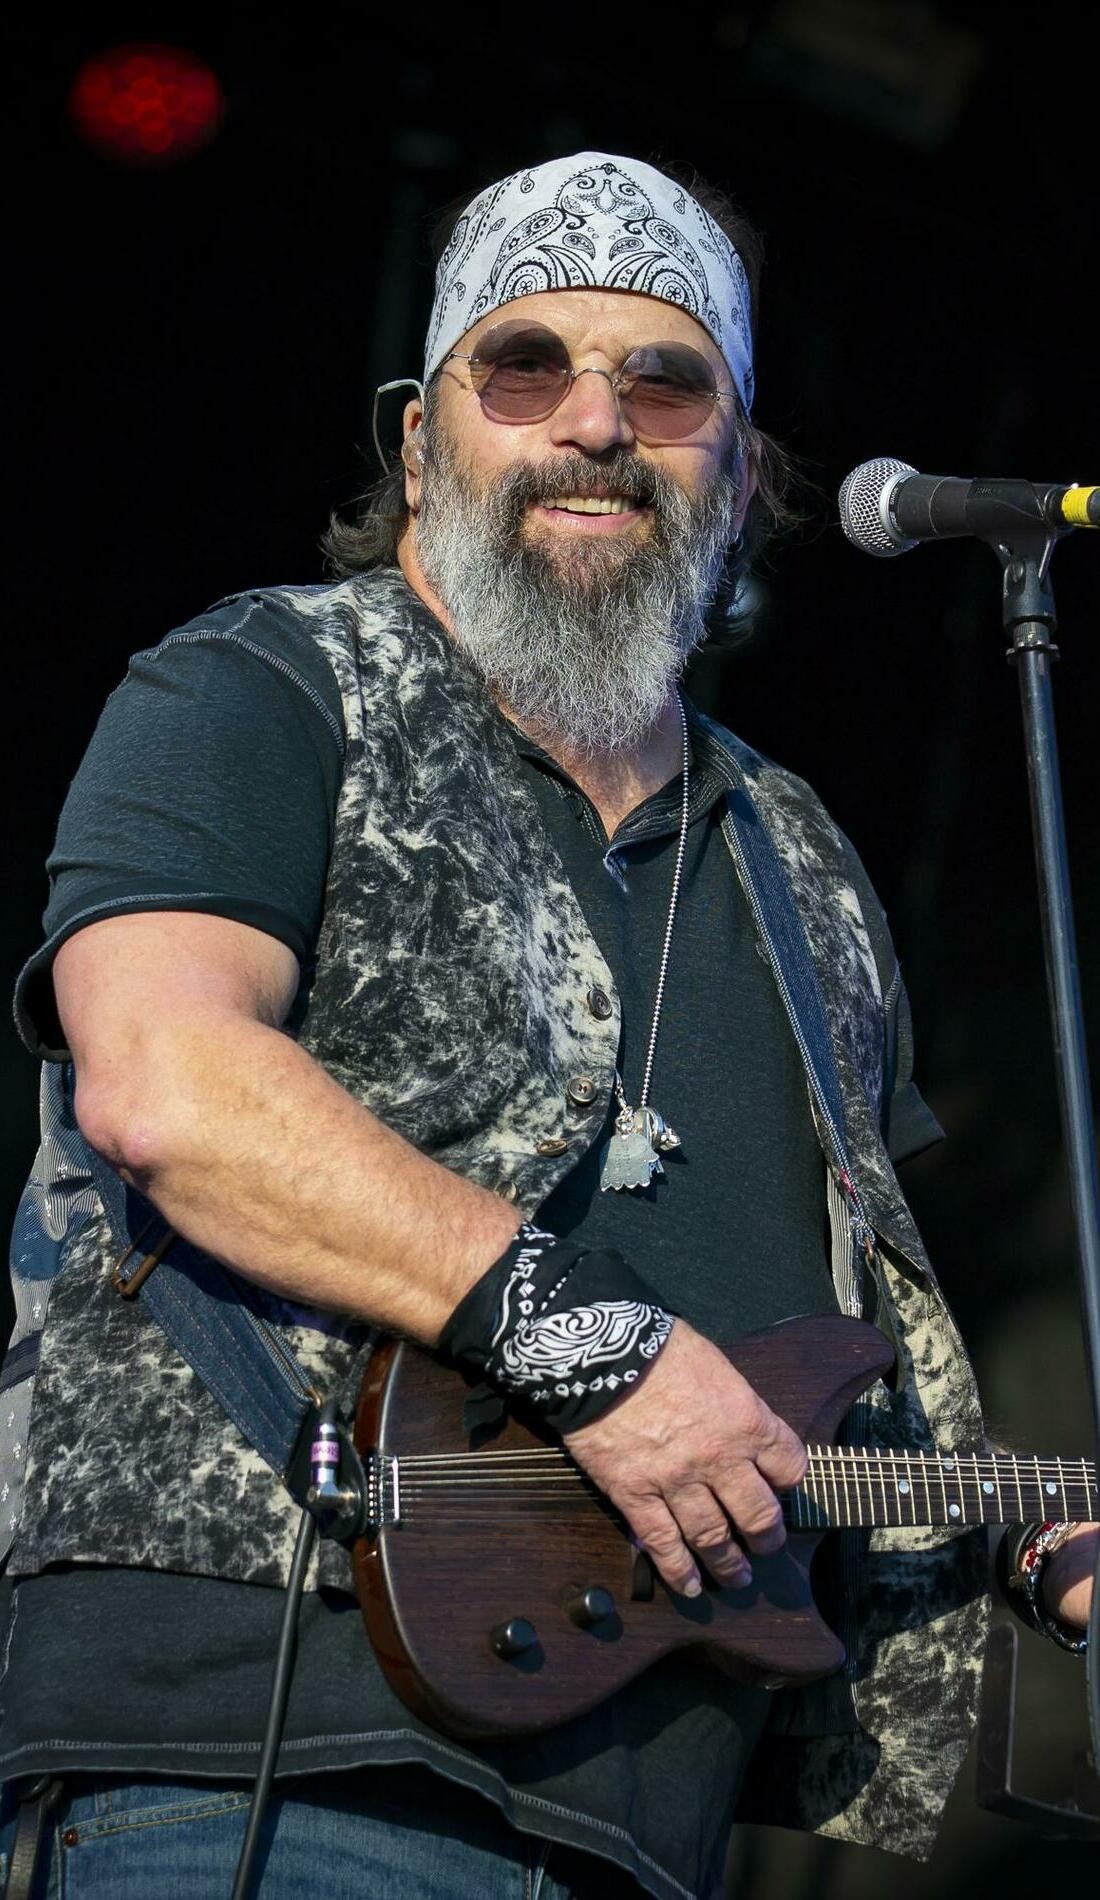 A Steve Earle live event